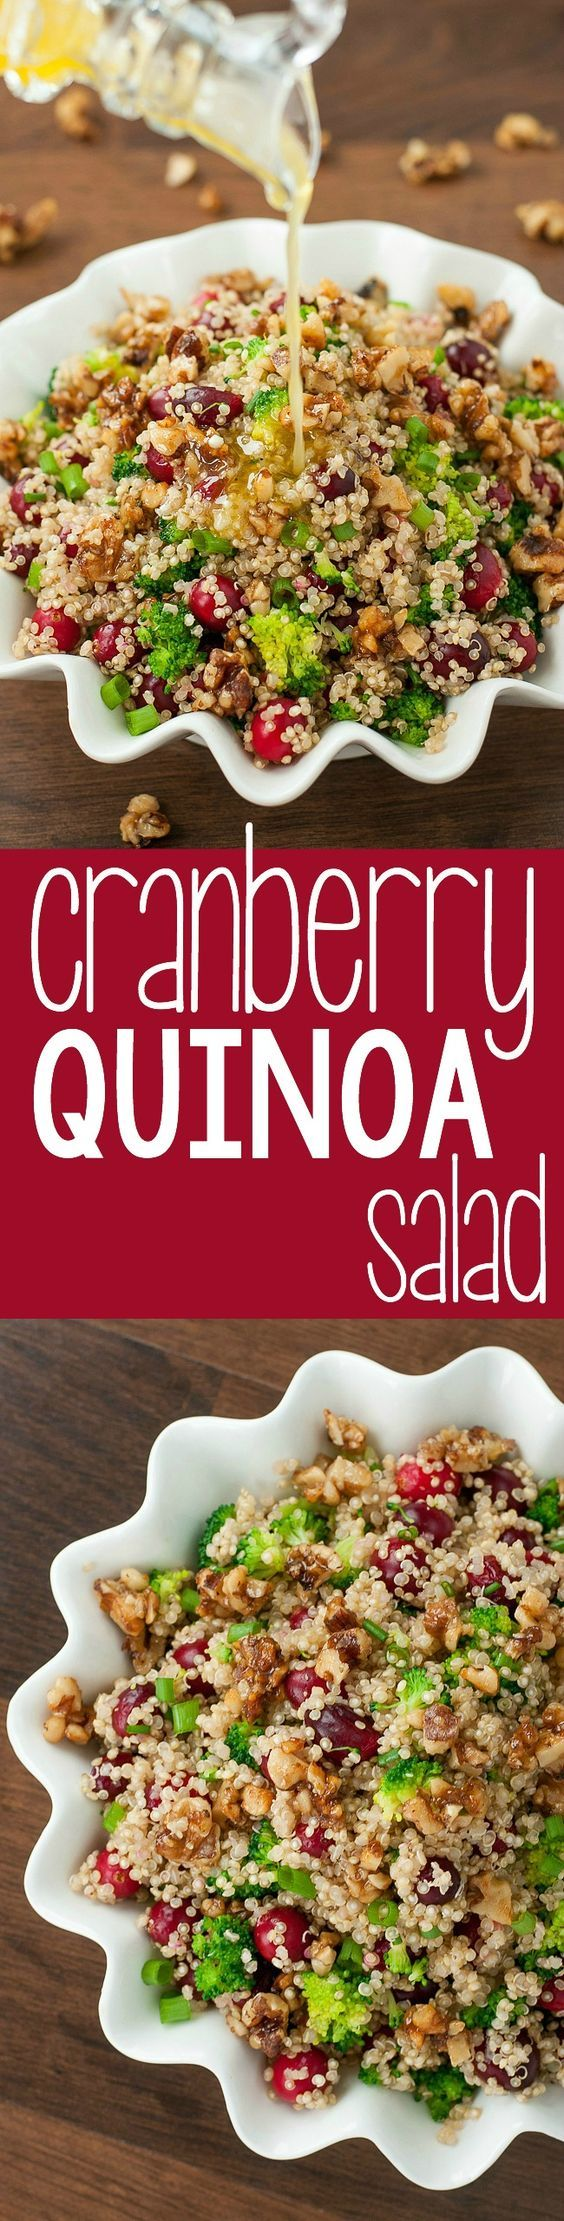 Cranberry Quinoa Salad with Candied Walnuts :: we're in love with this healthy gluten-free salad!